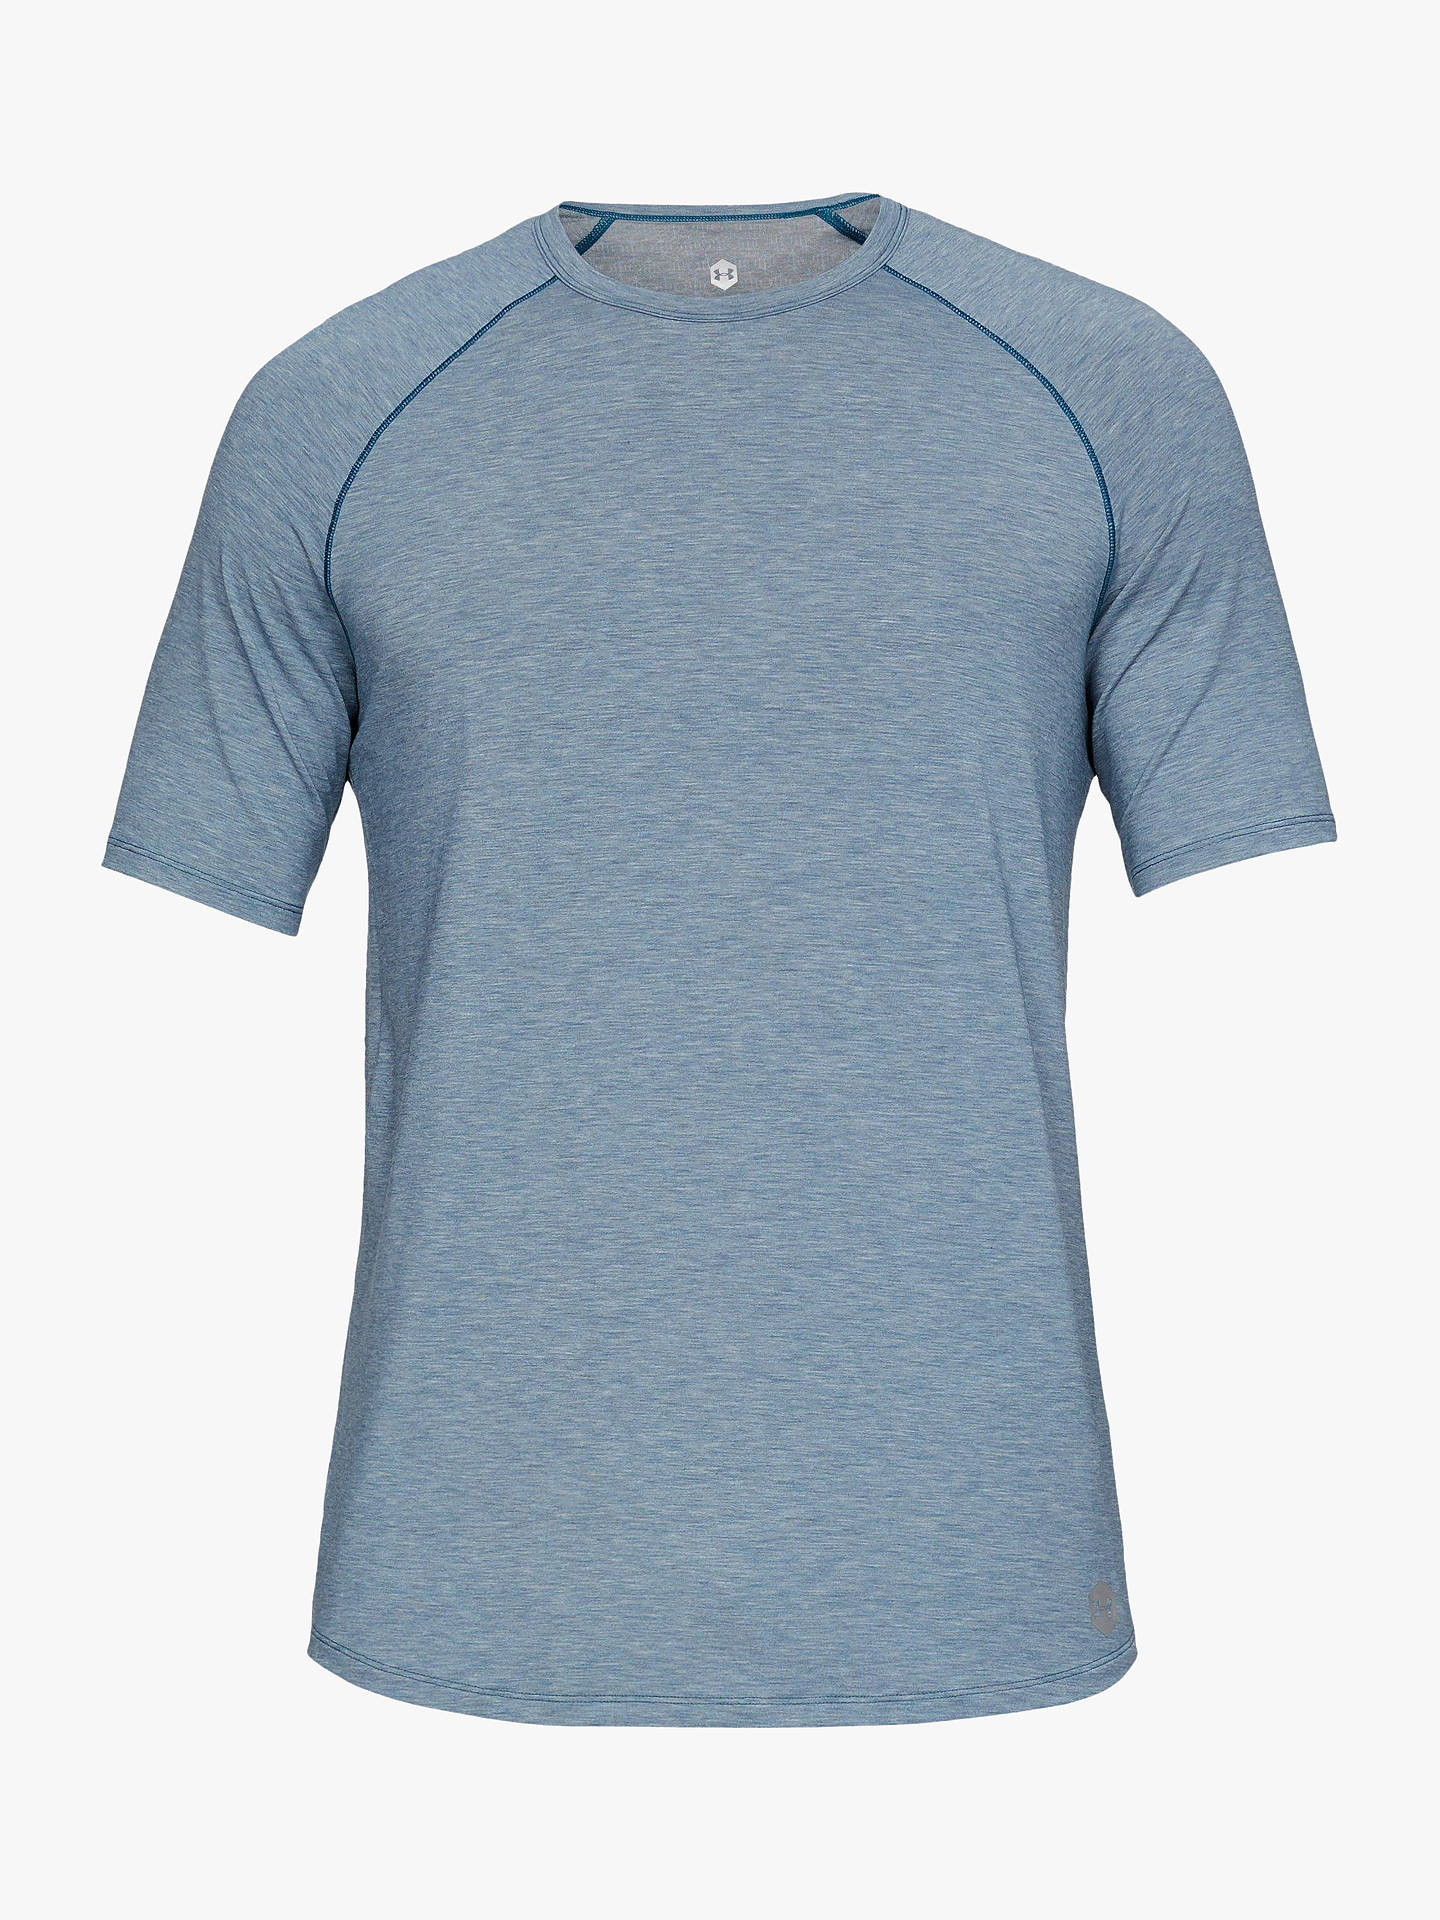 Under Armour Recovery Sleepwear Short Sleeve Crew Underwear